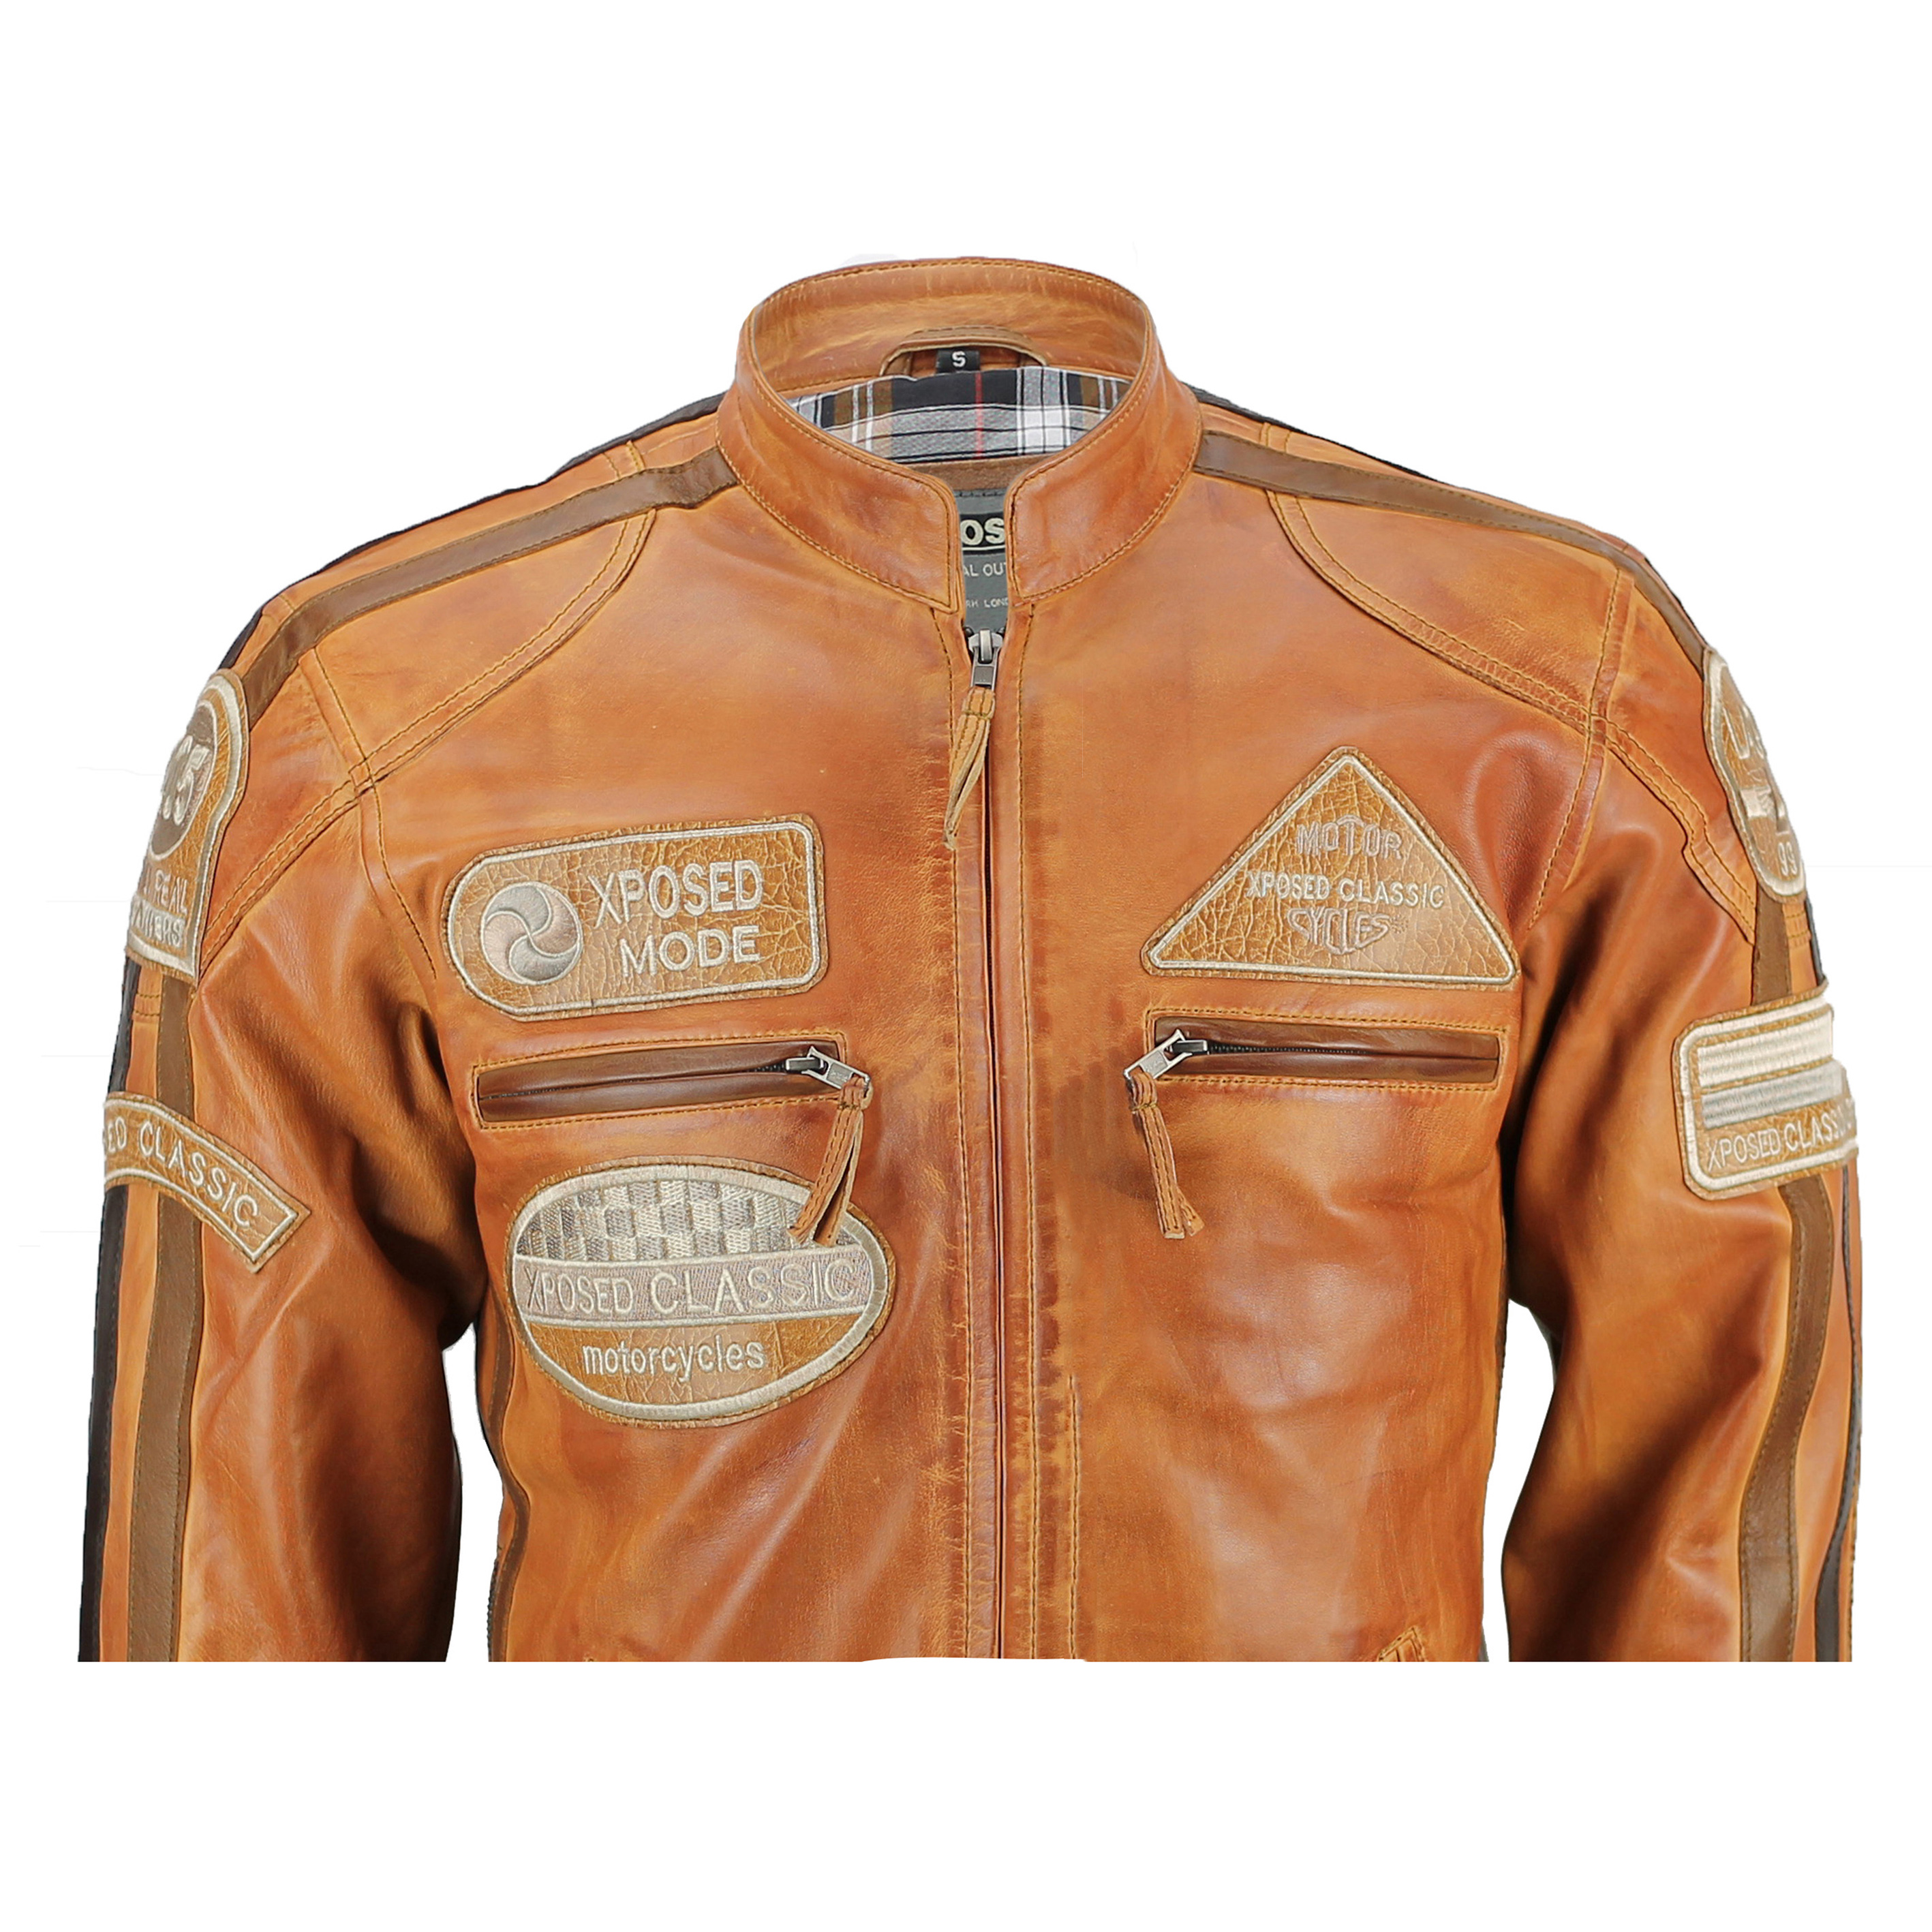 Retro brown leather motorcycle jacket